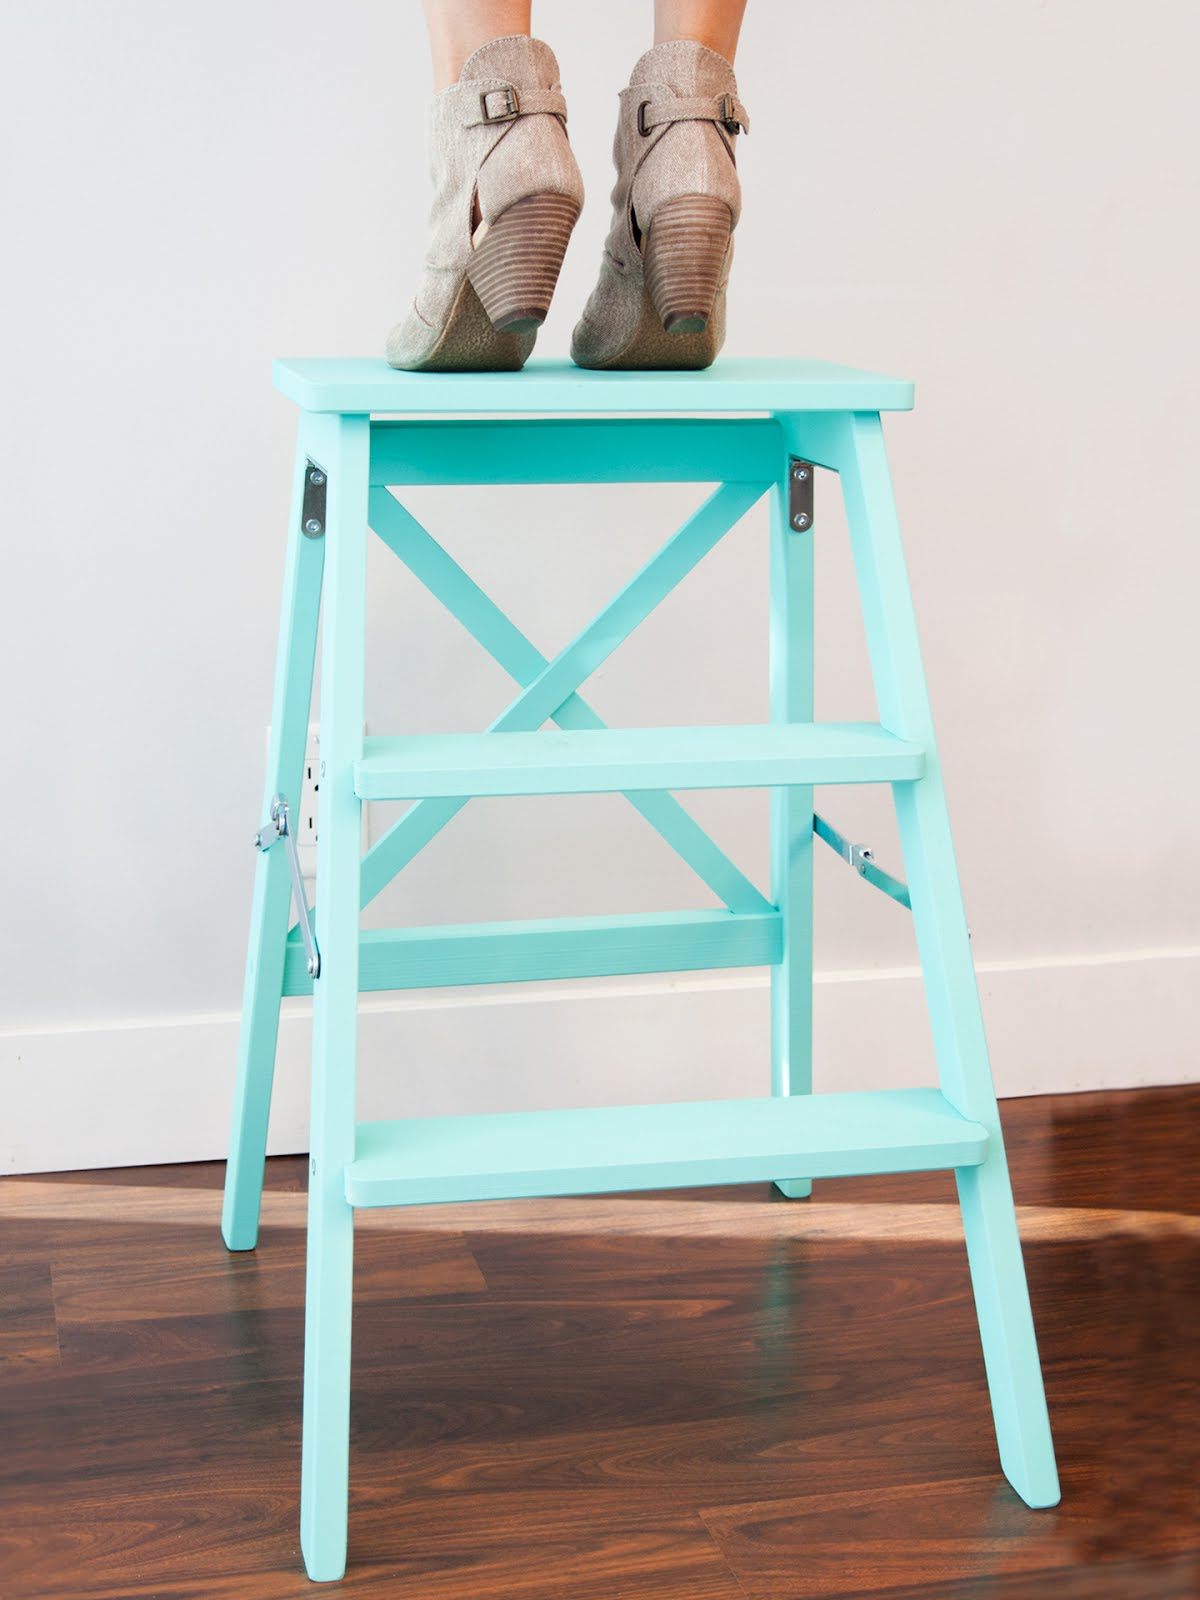 Teal step ladder